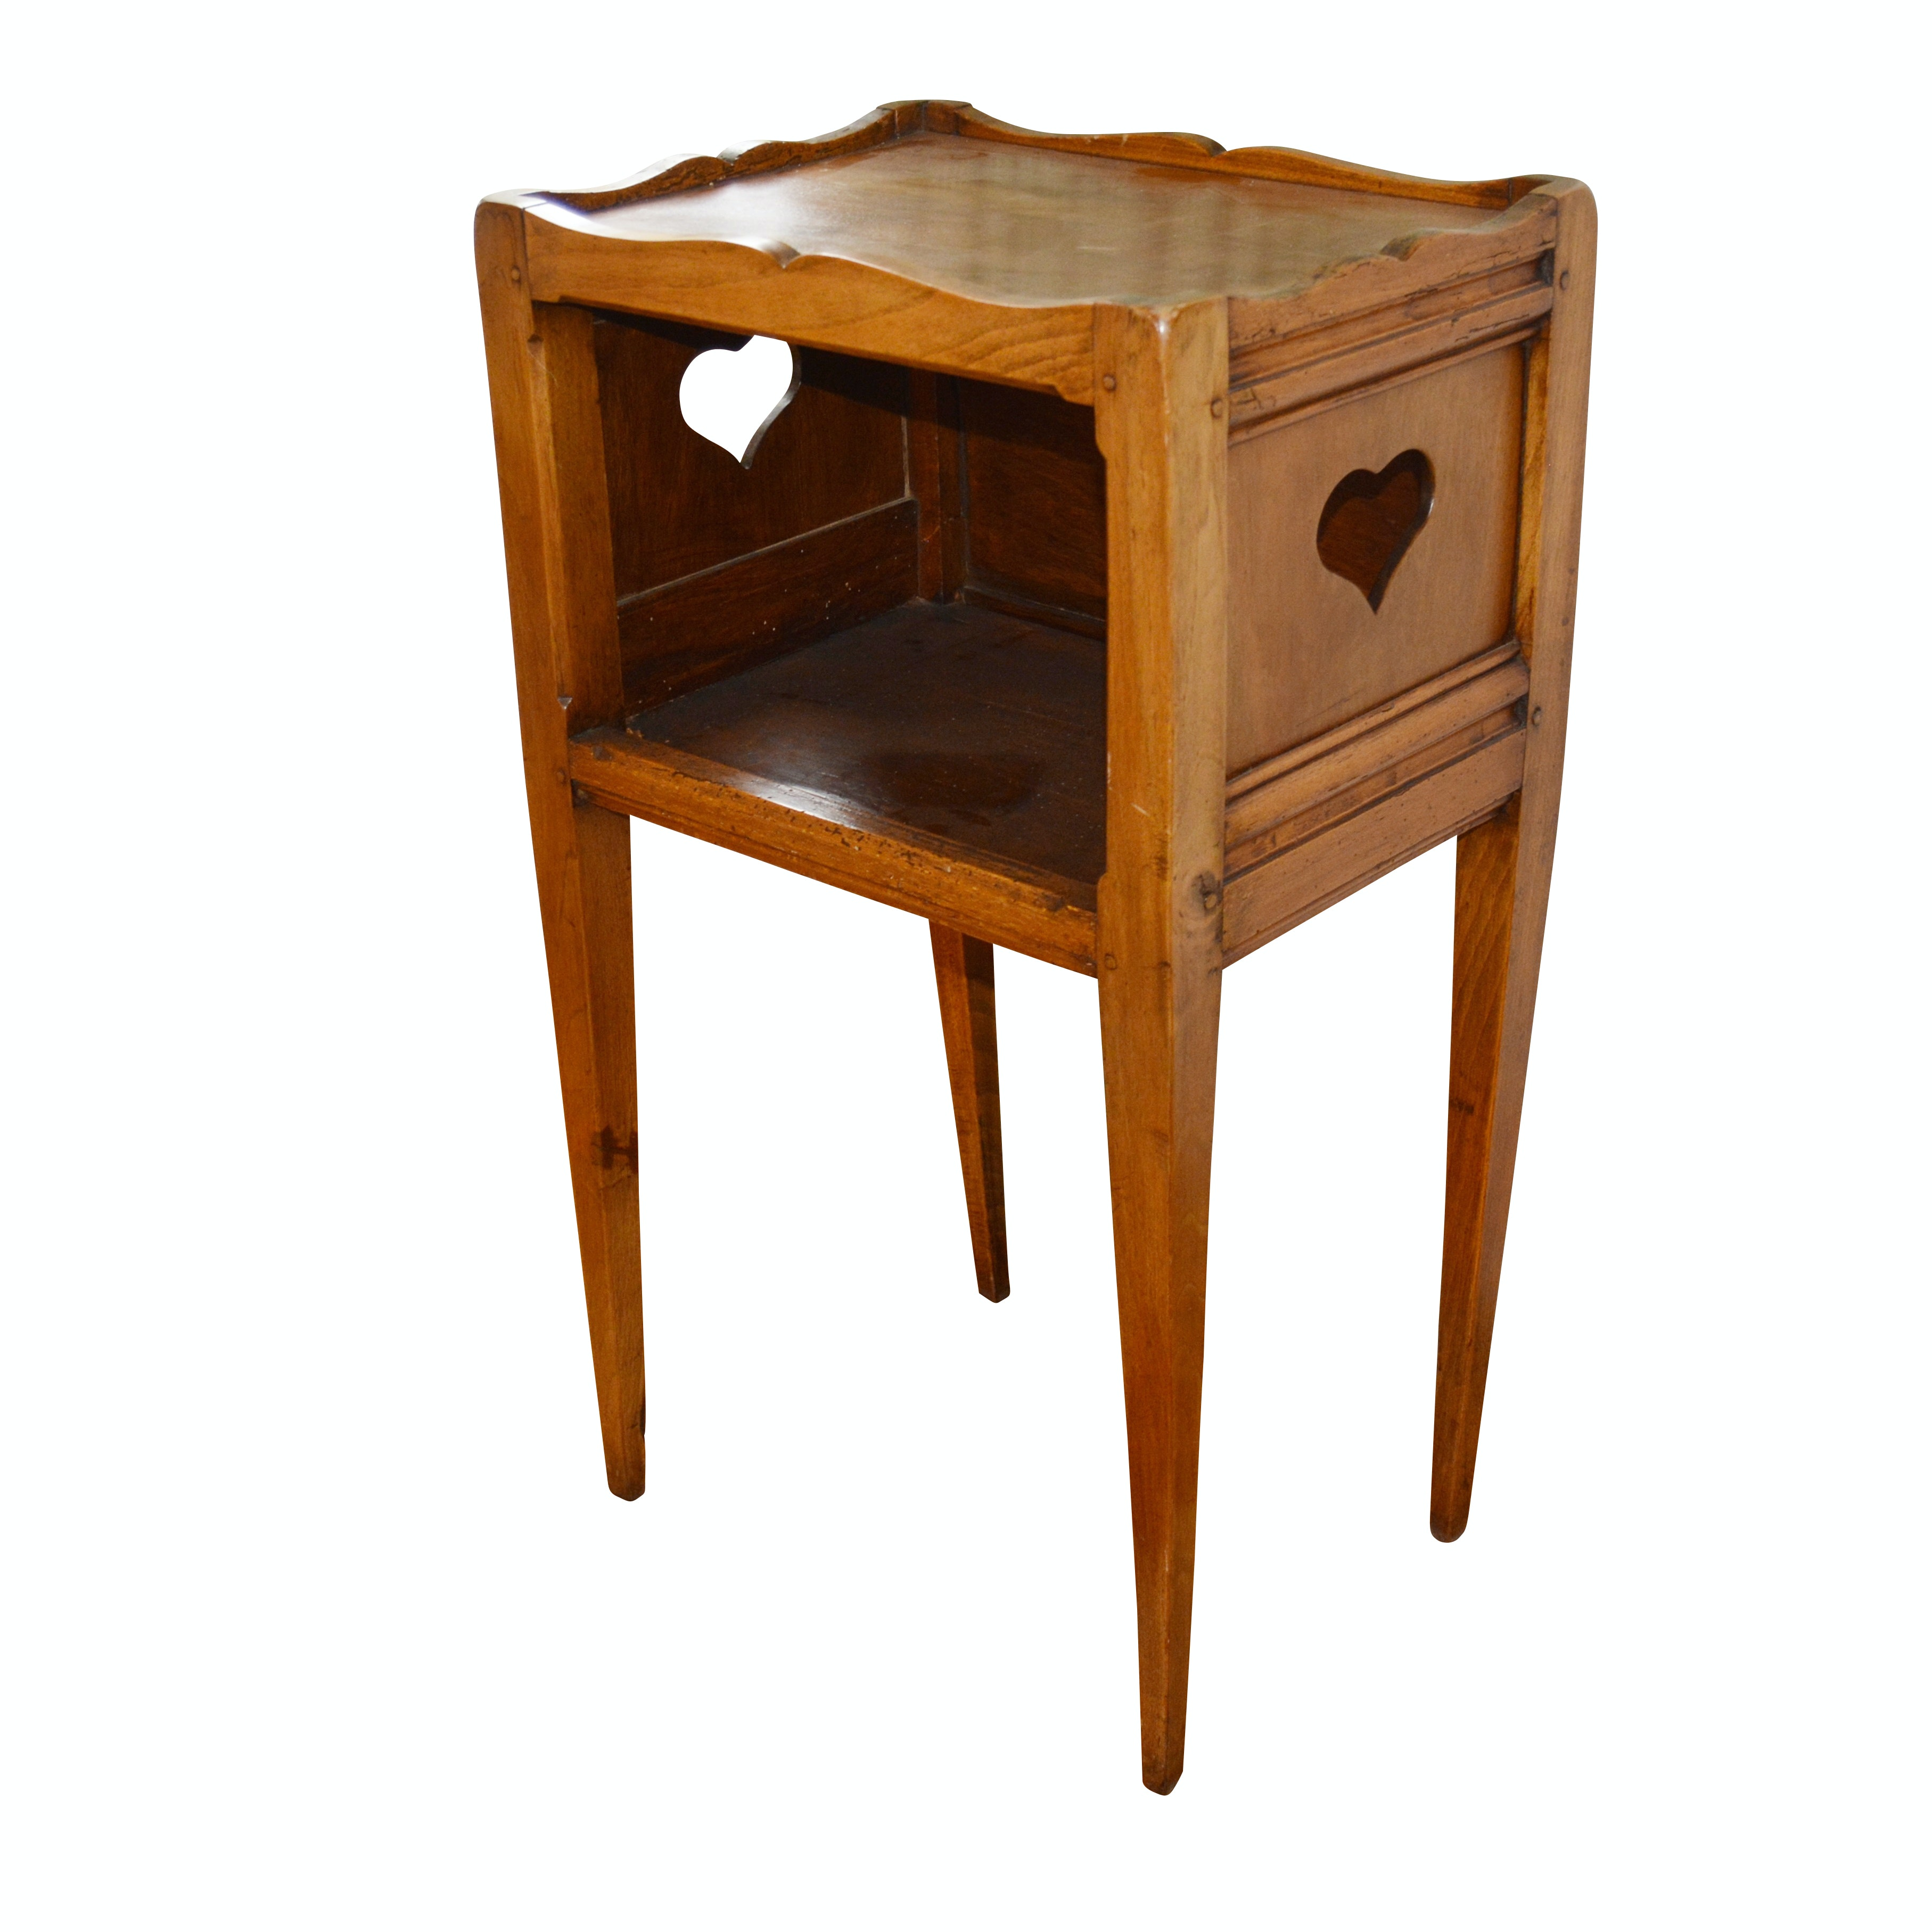 French Country Open Shelf Accent Table, Antique